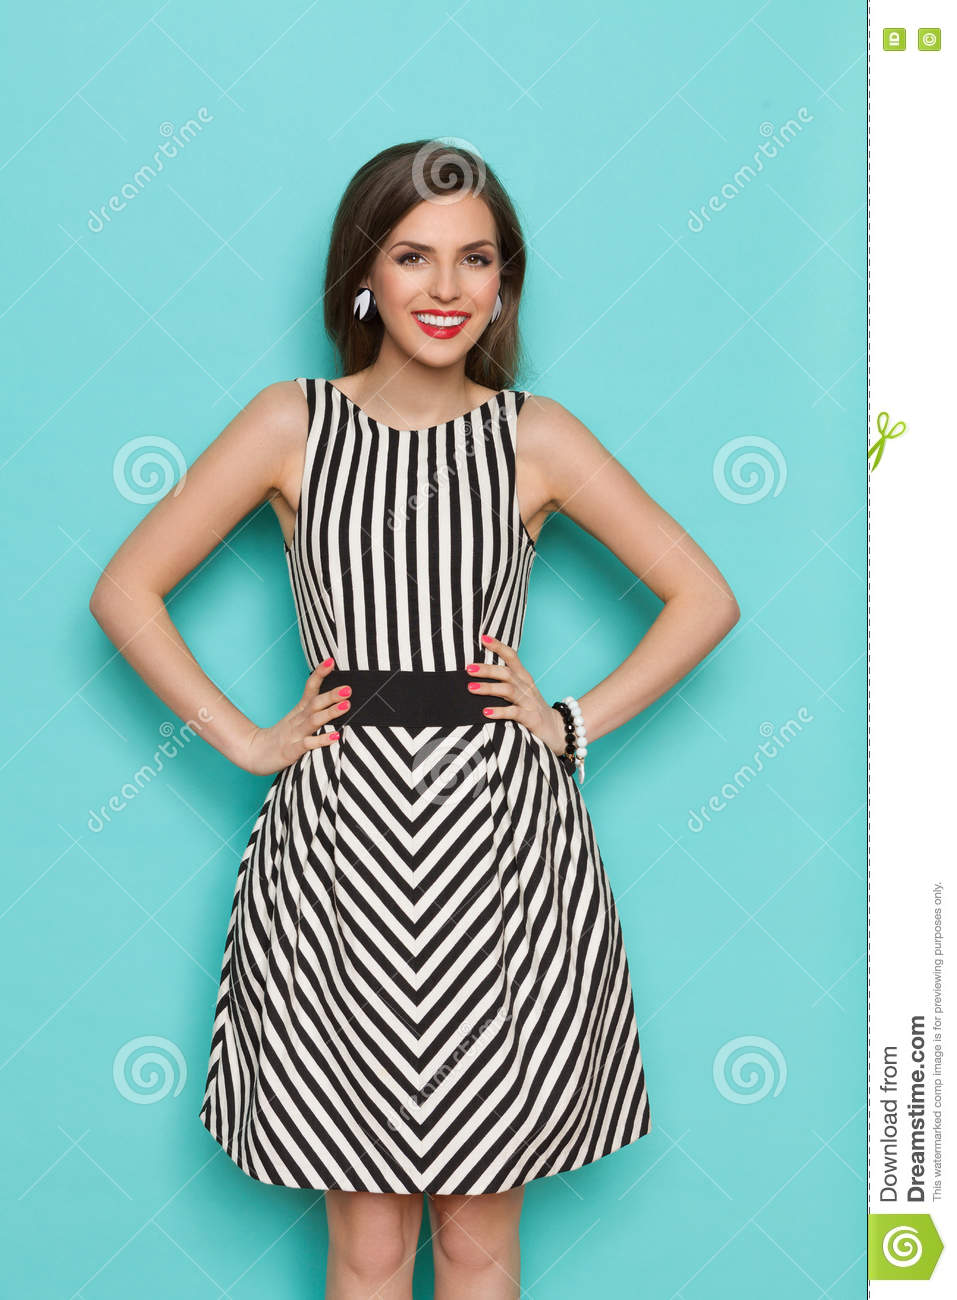 bfb678969fc Smiling elegant woman in black and white striped dress posing with hands on  hip and looking at camera. Three quarter length studio shot on turquoise ...